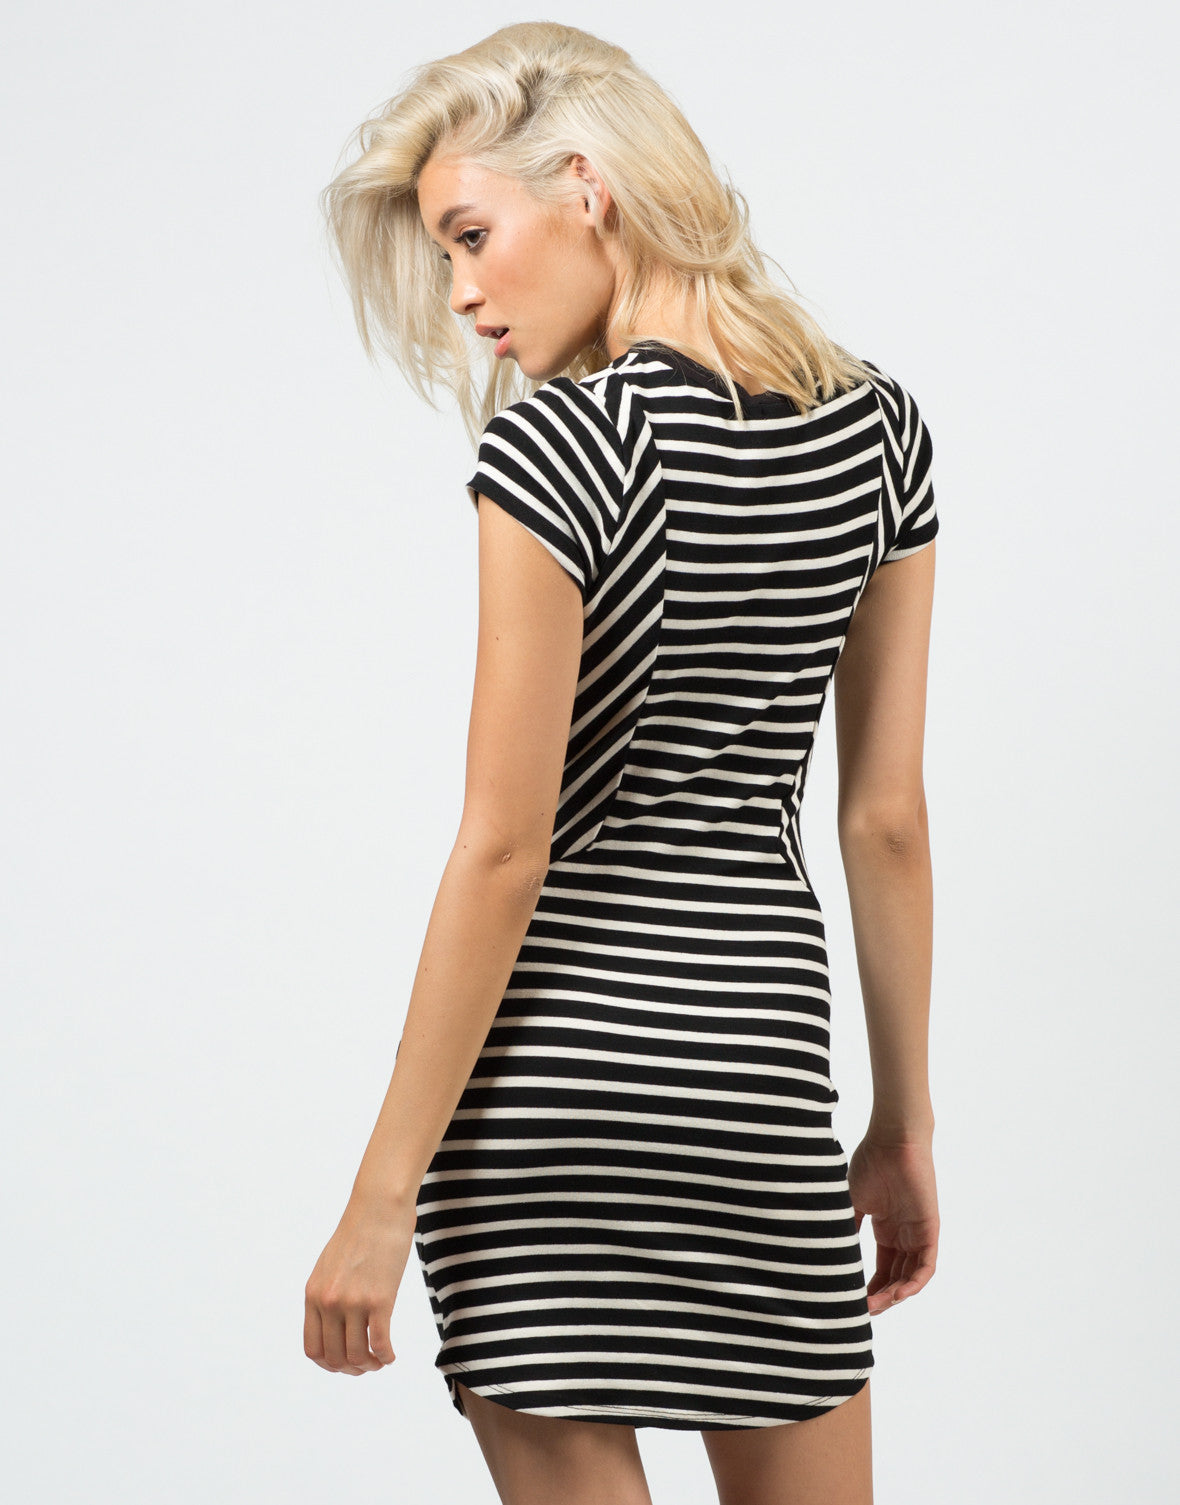 Back View of Contrast Striped Dress